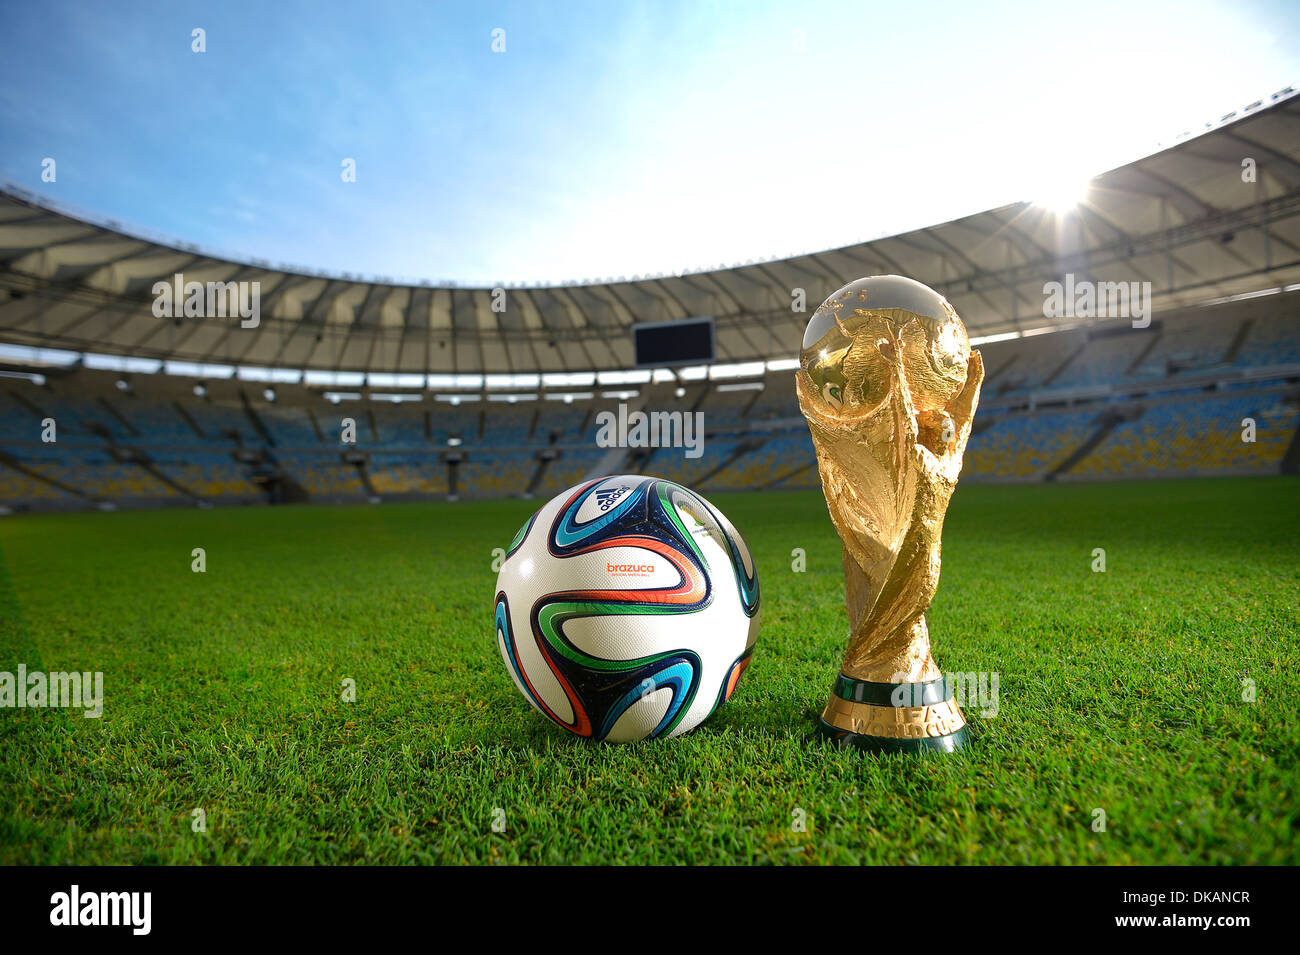 Adidas Brazuca, official match ball of the FIFA World Cup Brasil 2014, and the official World Cup Trophy in Maracana Stadium - Stock Image